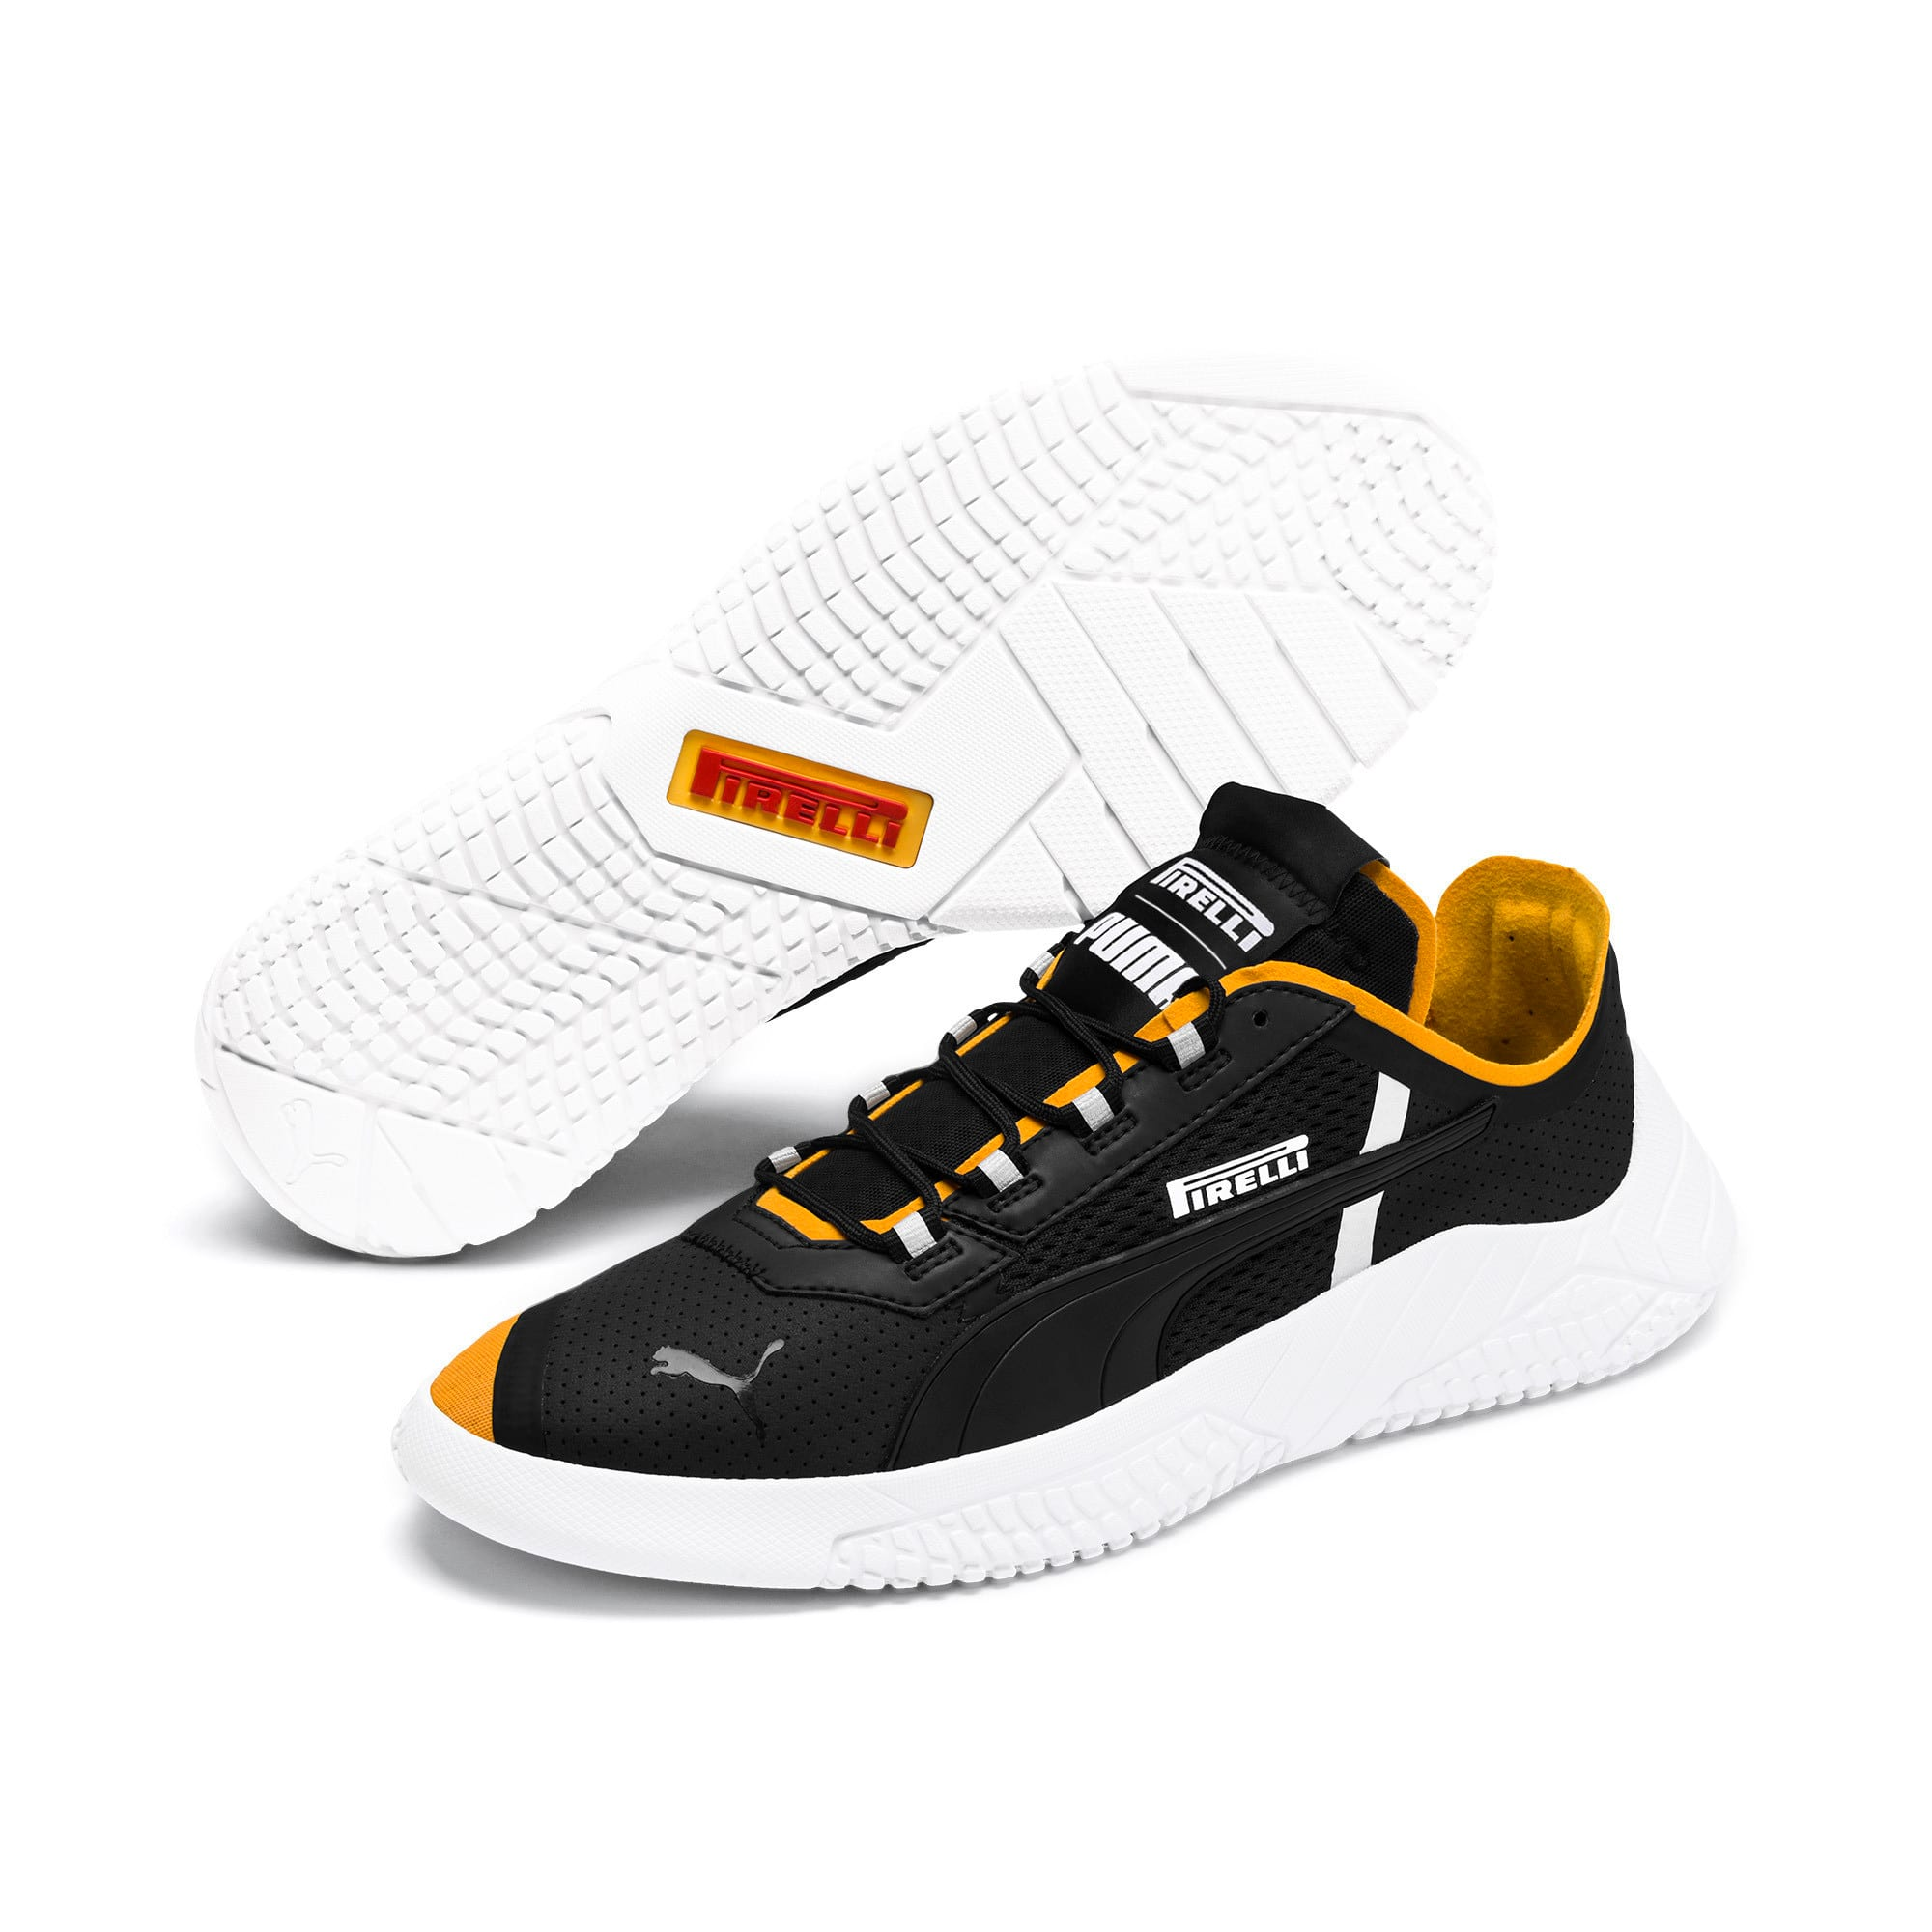 Thumbnail 3 of Scarpe da ginnastica Pirelli Replicat-X, Puma Black-Puma White-Zinnia, medium